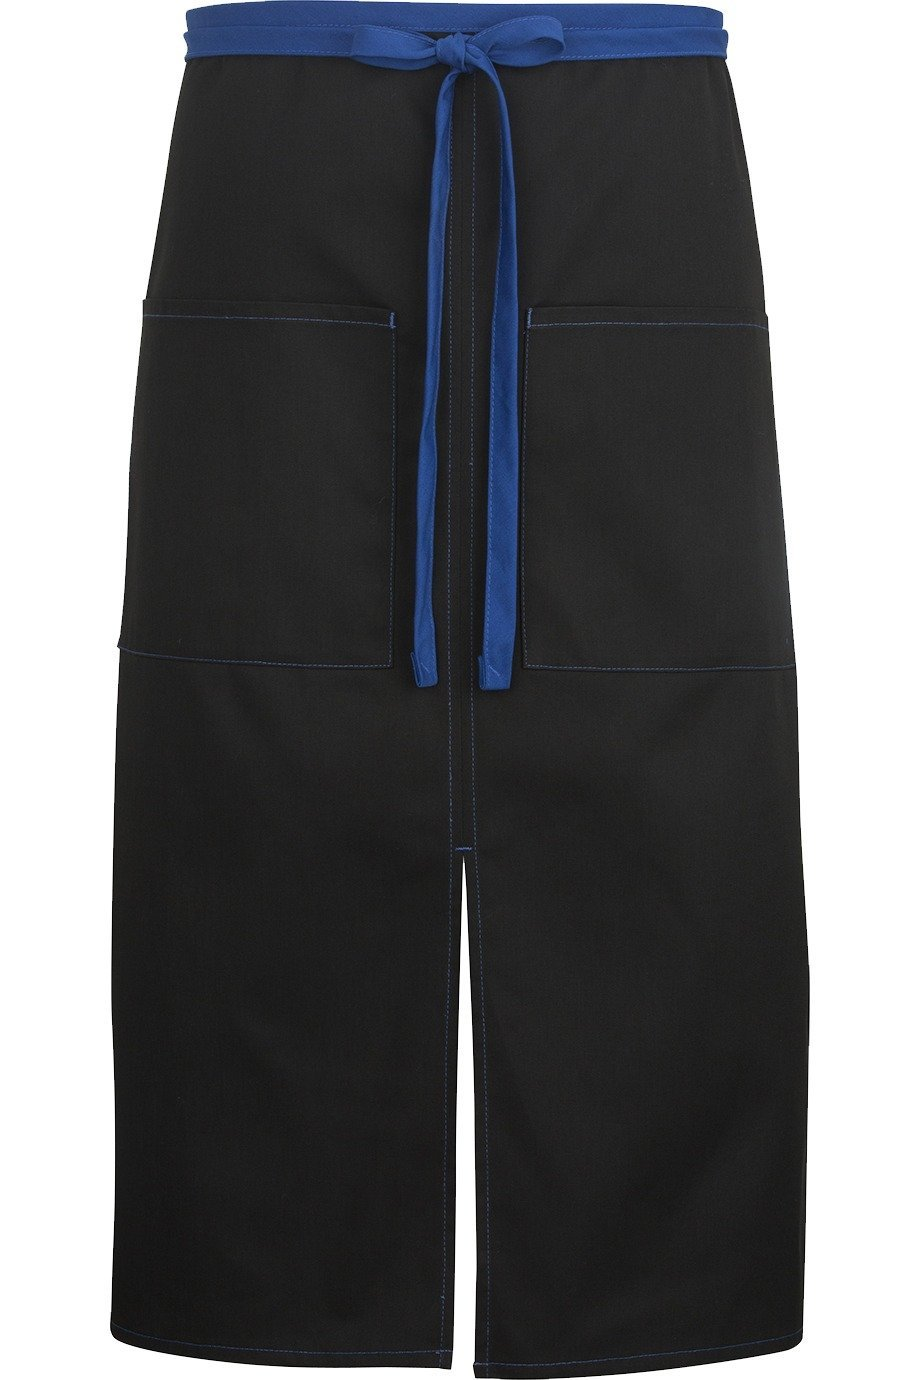 Black w/ Royal Blue Split Bistro Color Block Apron (2 Pockets)